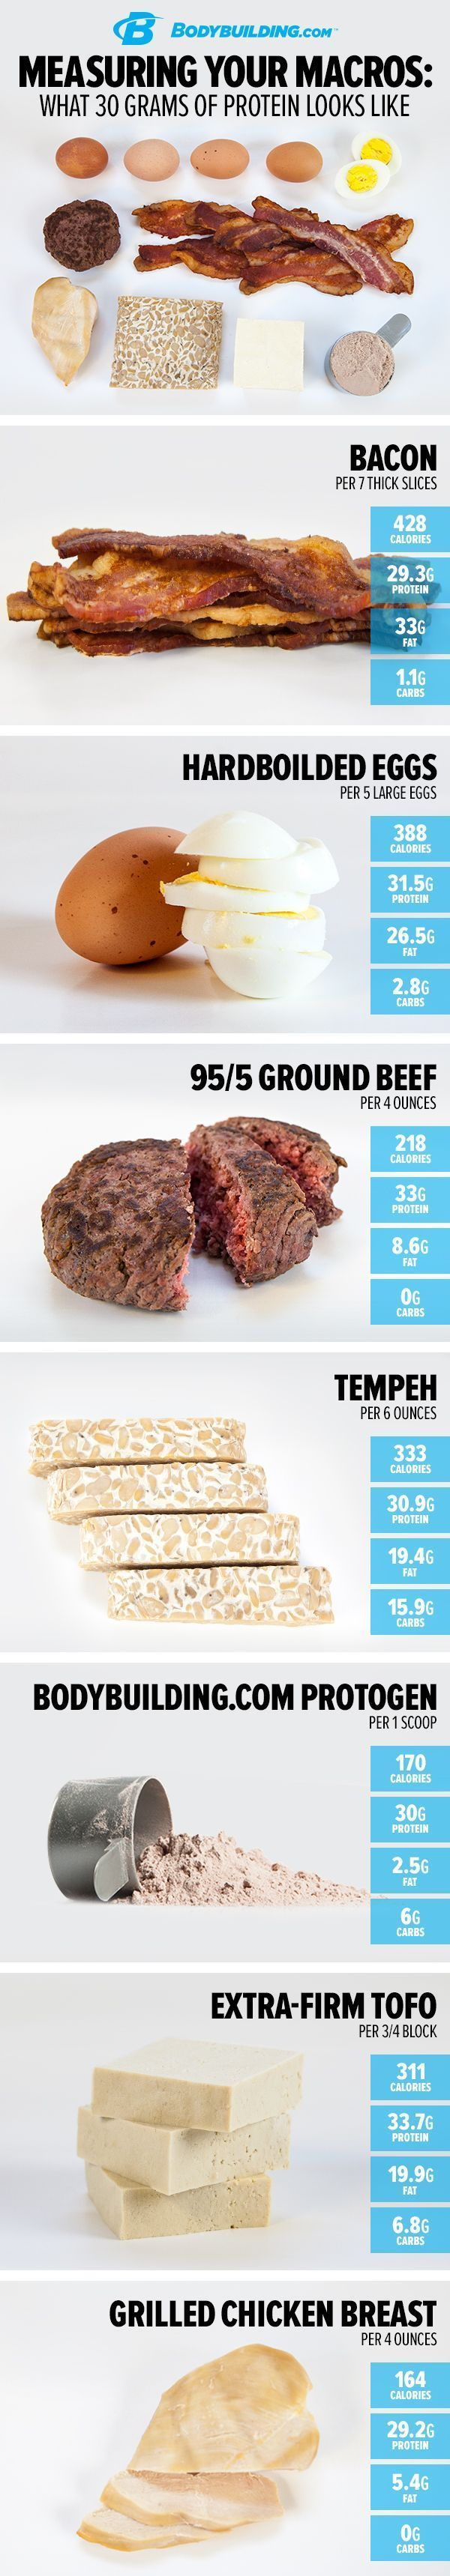 Use this one simple trick to build muscle quick See more here ► www.youtube.com/... Tags: dramatic weight loss tips - Measuring Your Macros: What 30 Grams of Protein Looks Like! Want to build muscle and lose fat? Then you need protein! Here's how much you need and how to measure it for each meal. Bodybuilding.com